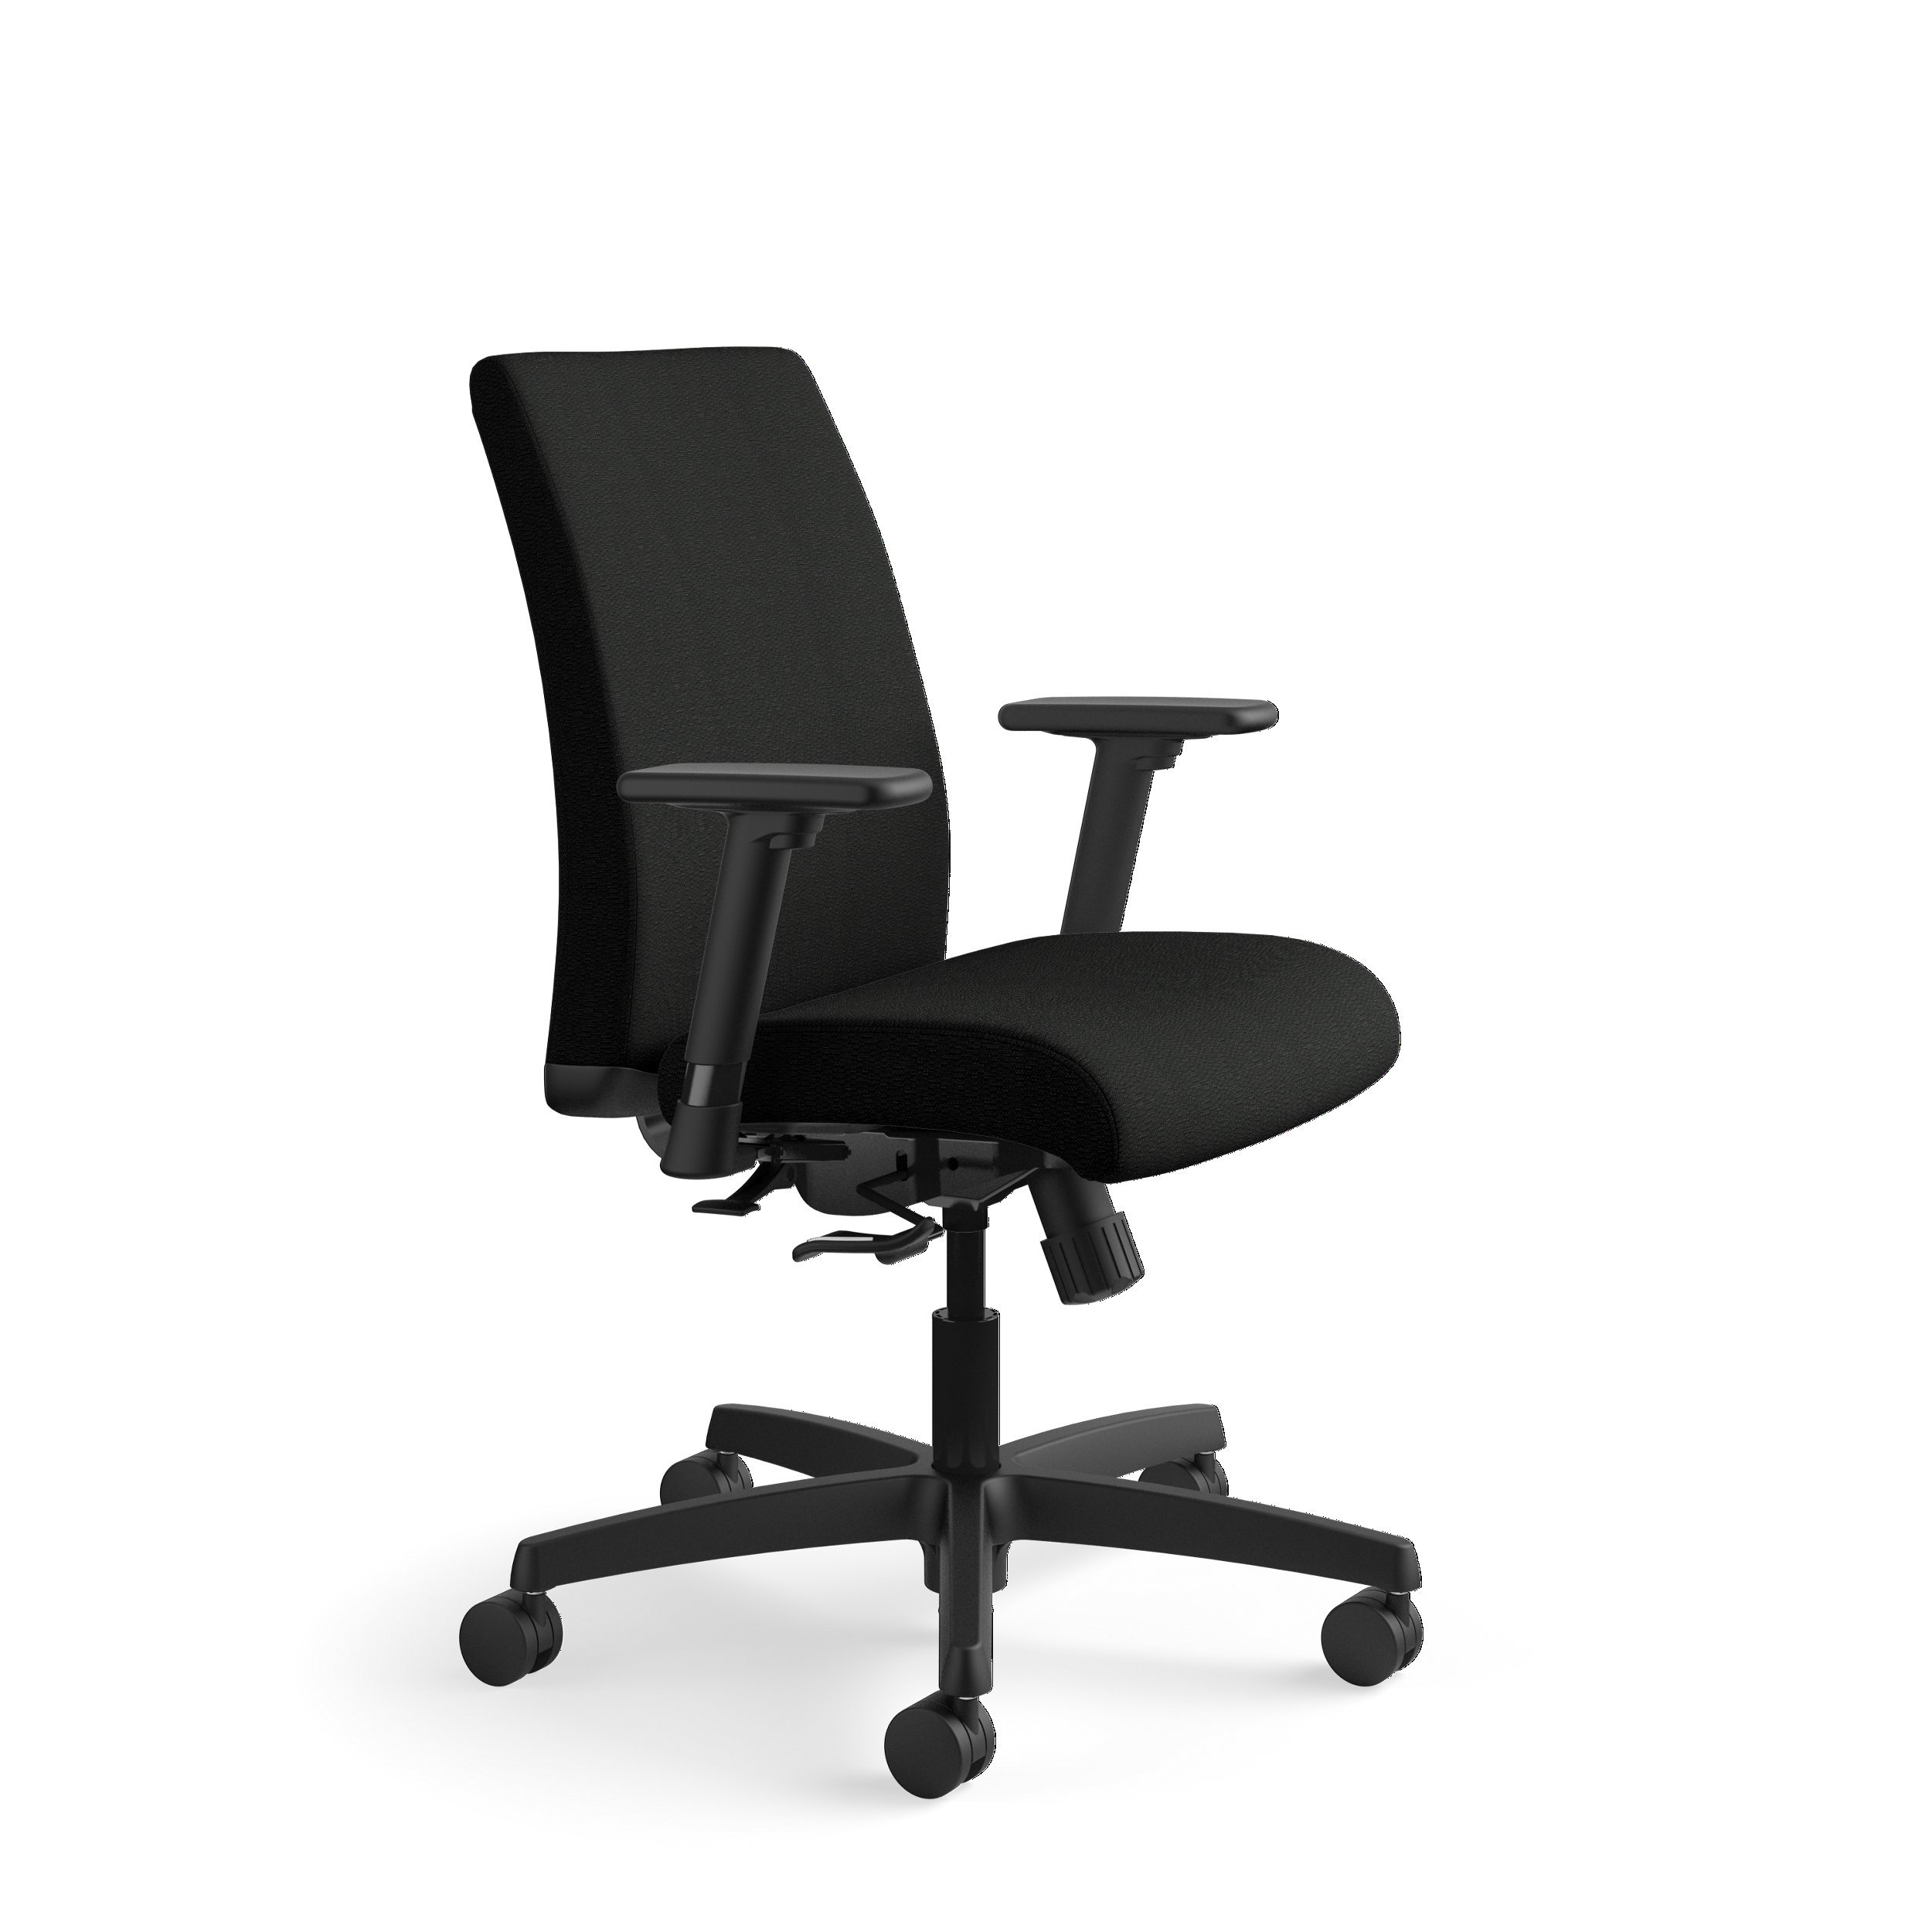 HON Ignition Task Chair - Low Back Chair for Office or Computer Desk, Black (HITL1)